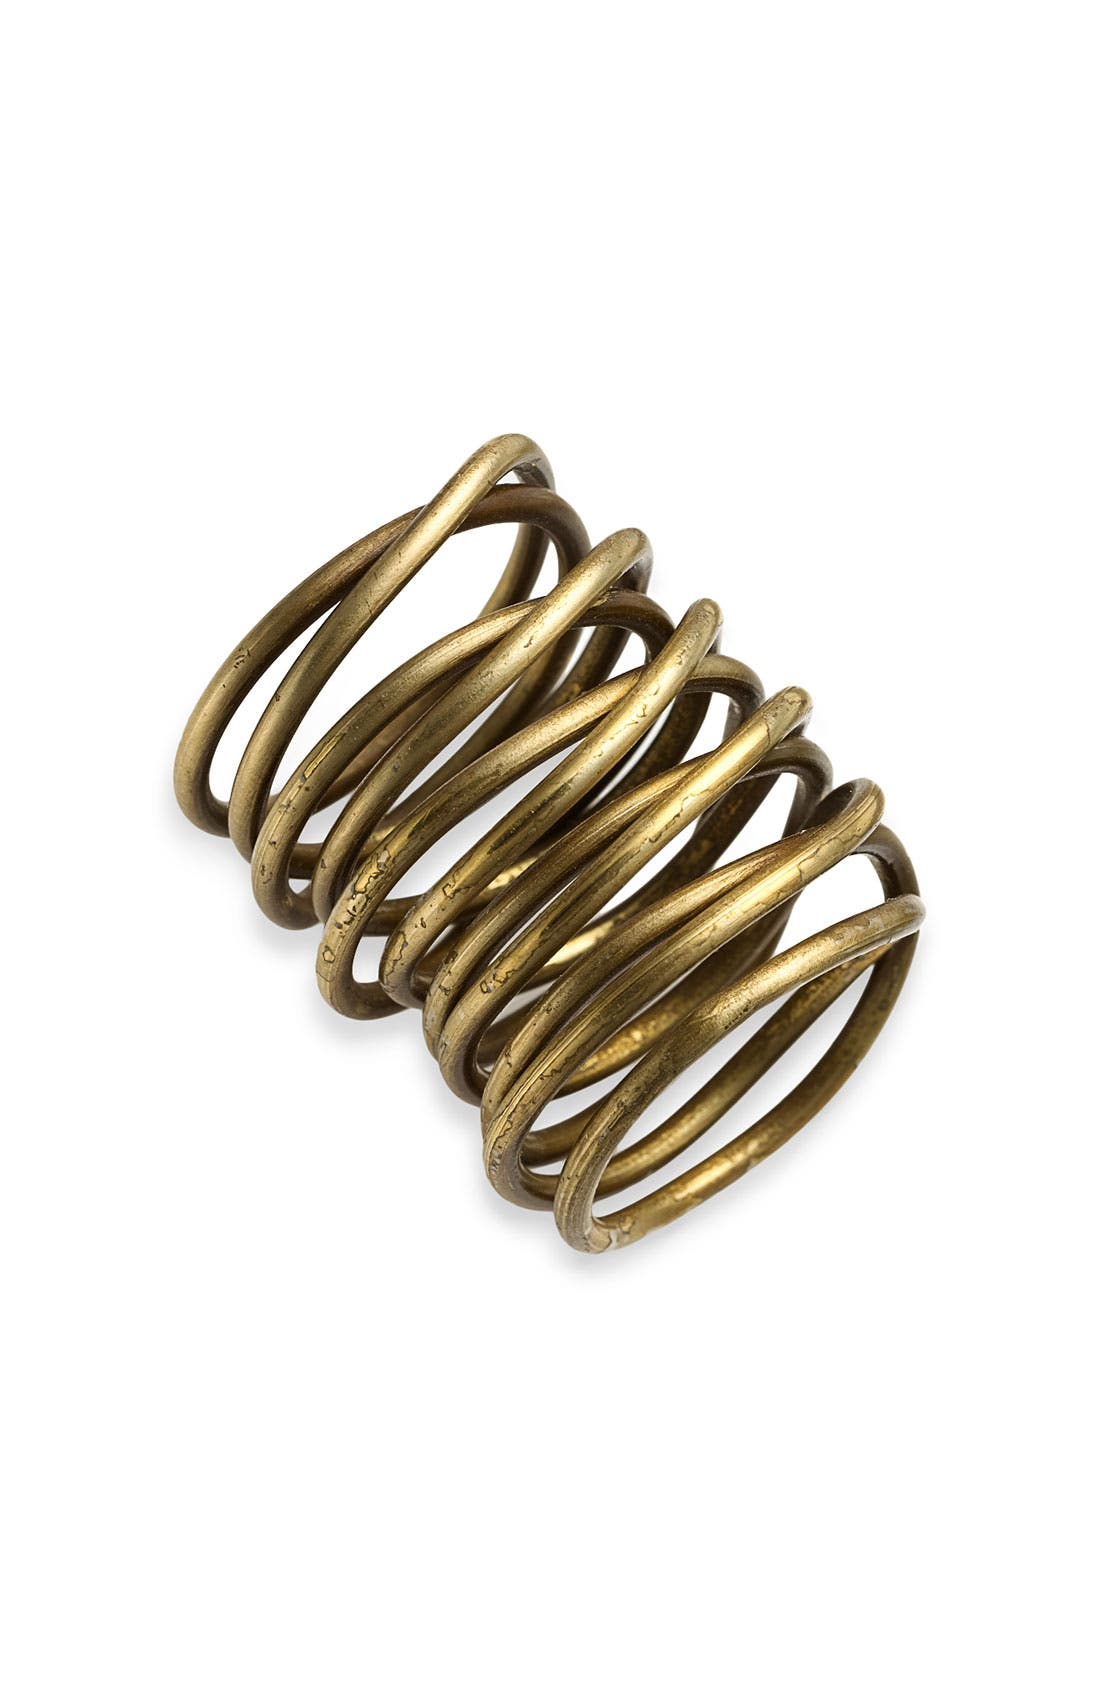 Main Image - Kelly Wearstler Twisted Brass Ring